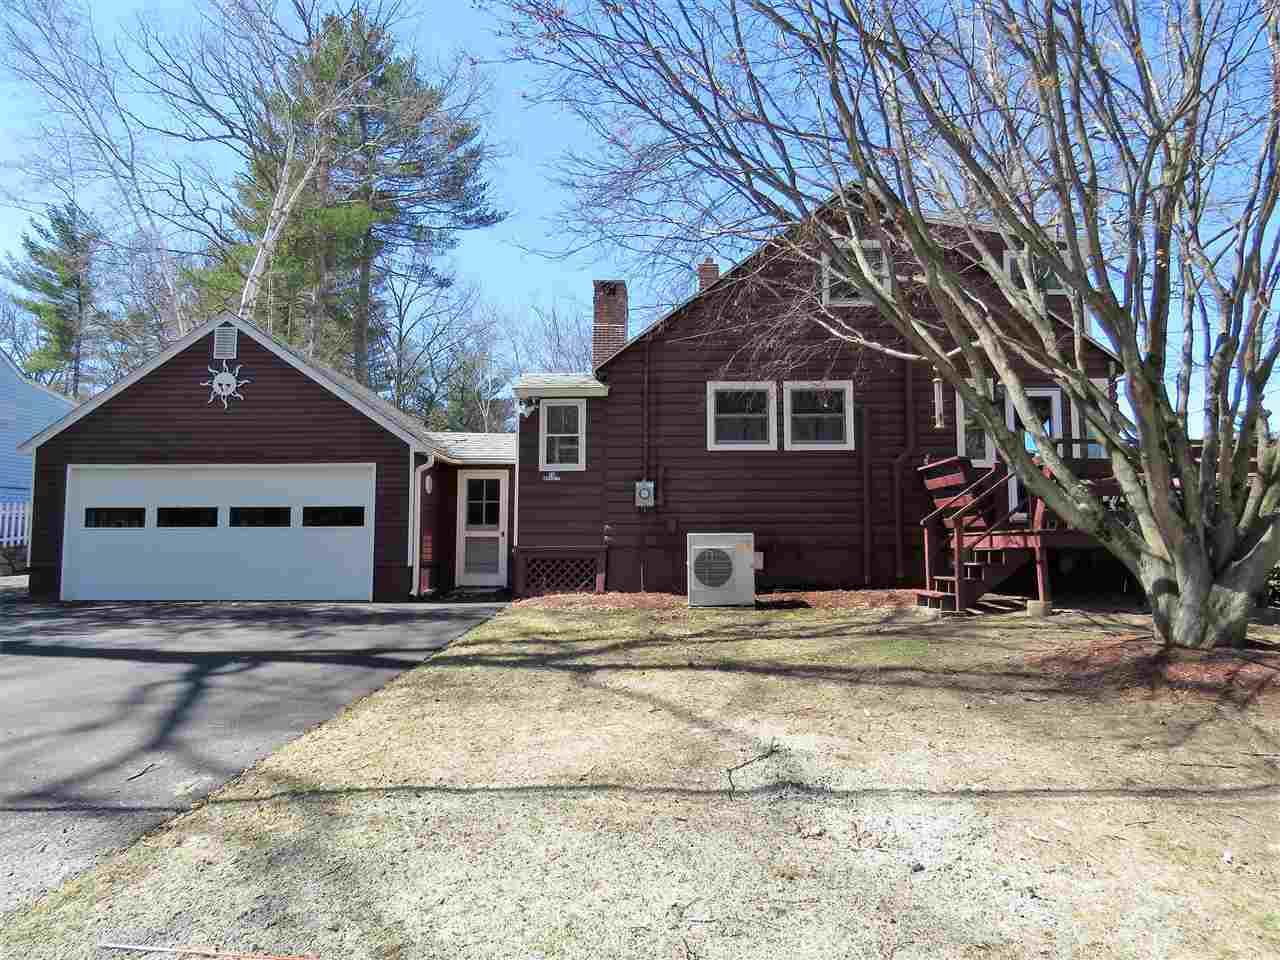 10 Andover St Pelham Nh Mls 4674511 Better Homes And Gardens Real Estate